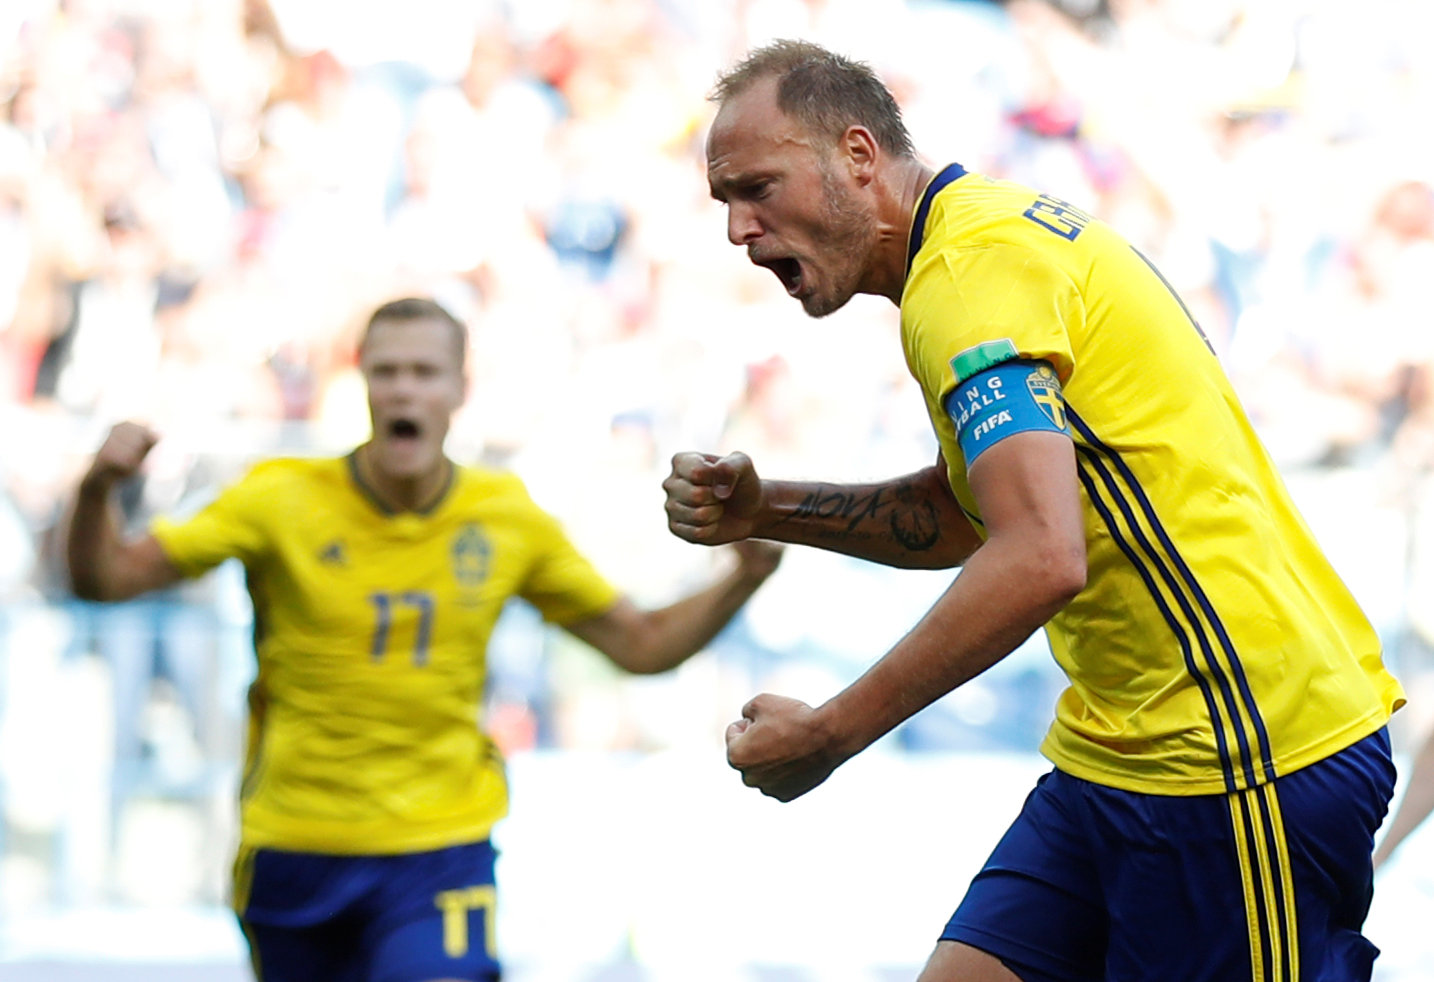 Sweden's Andreas Granqvist celebrates scoring their first goal. Photo: REUTERS